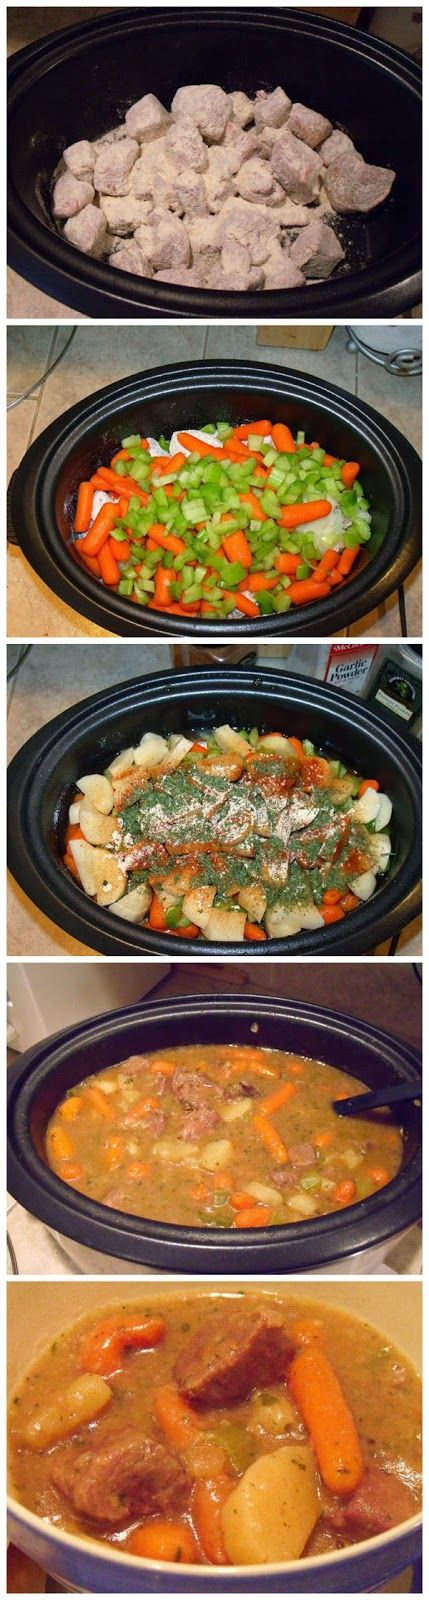 Easy Hearty Crockpot Stew - made it tonight & it was fantastic!!! Only change I made was added an 1/2 can of tomato soup.    Ingredients   2...